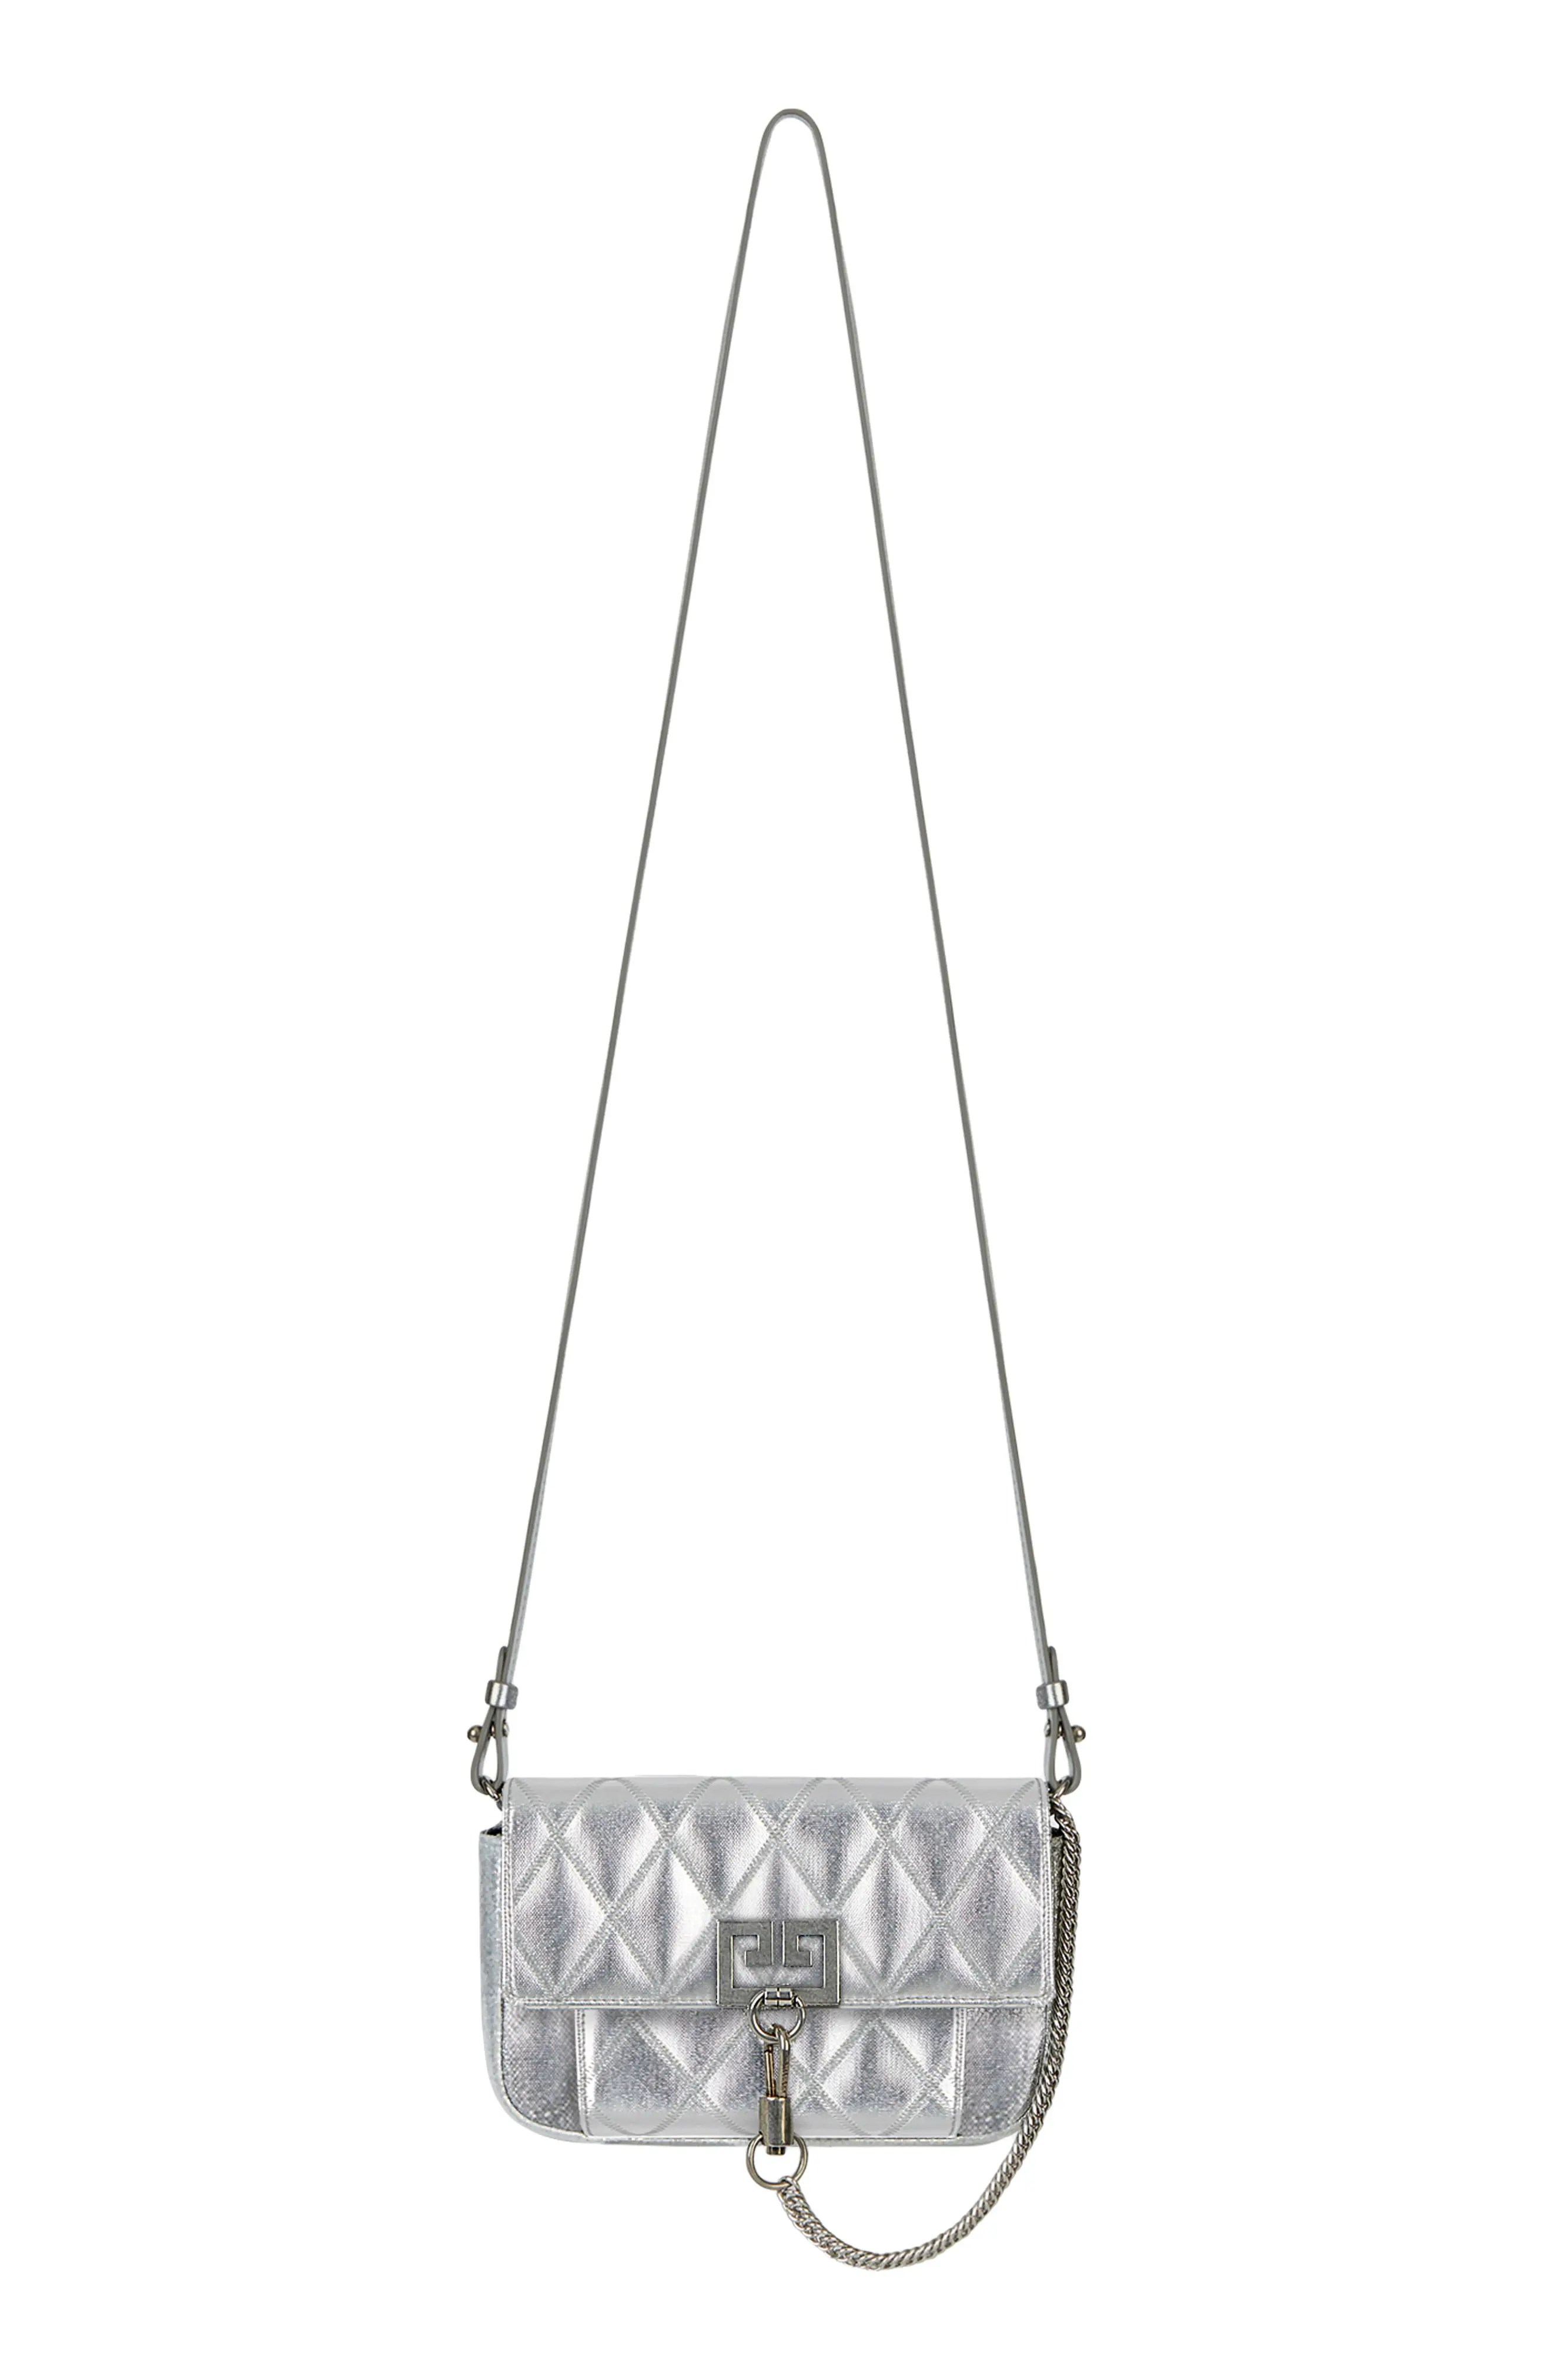 Givenchy Women S Bags